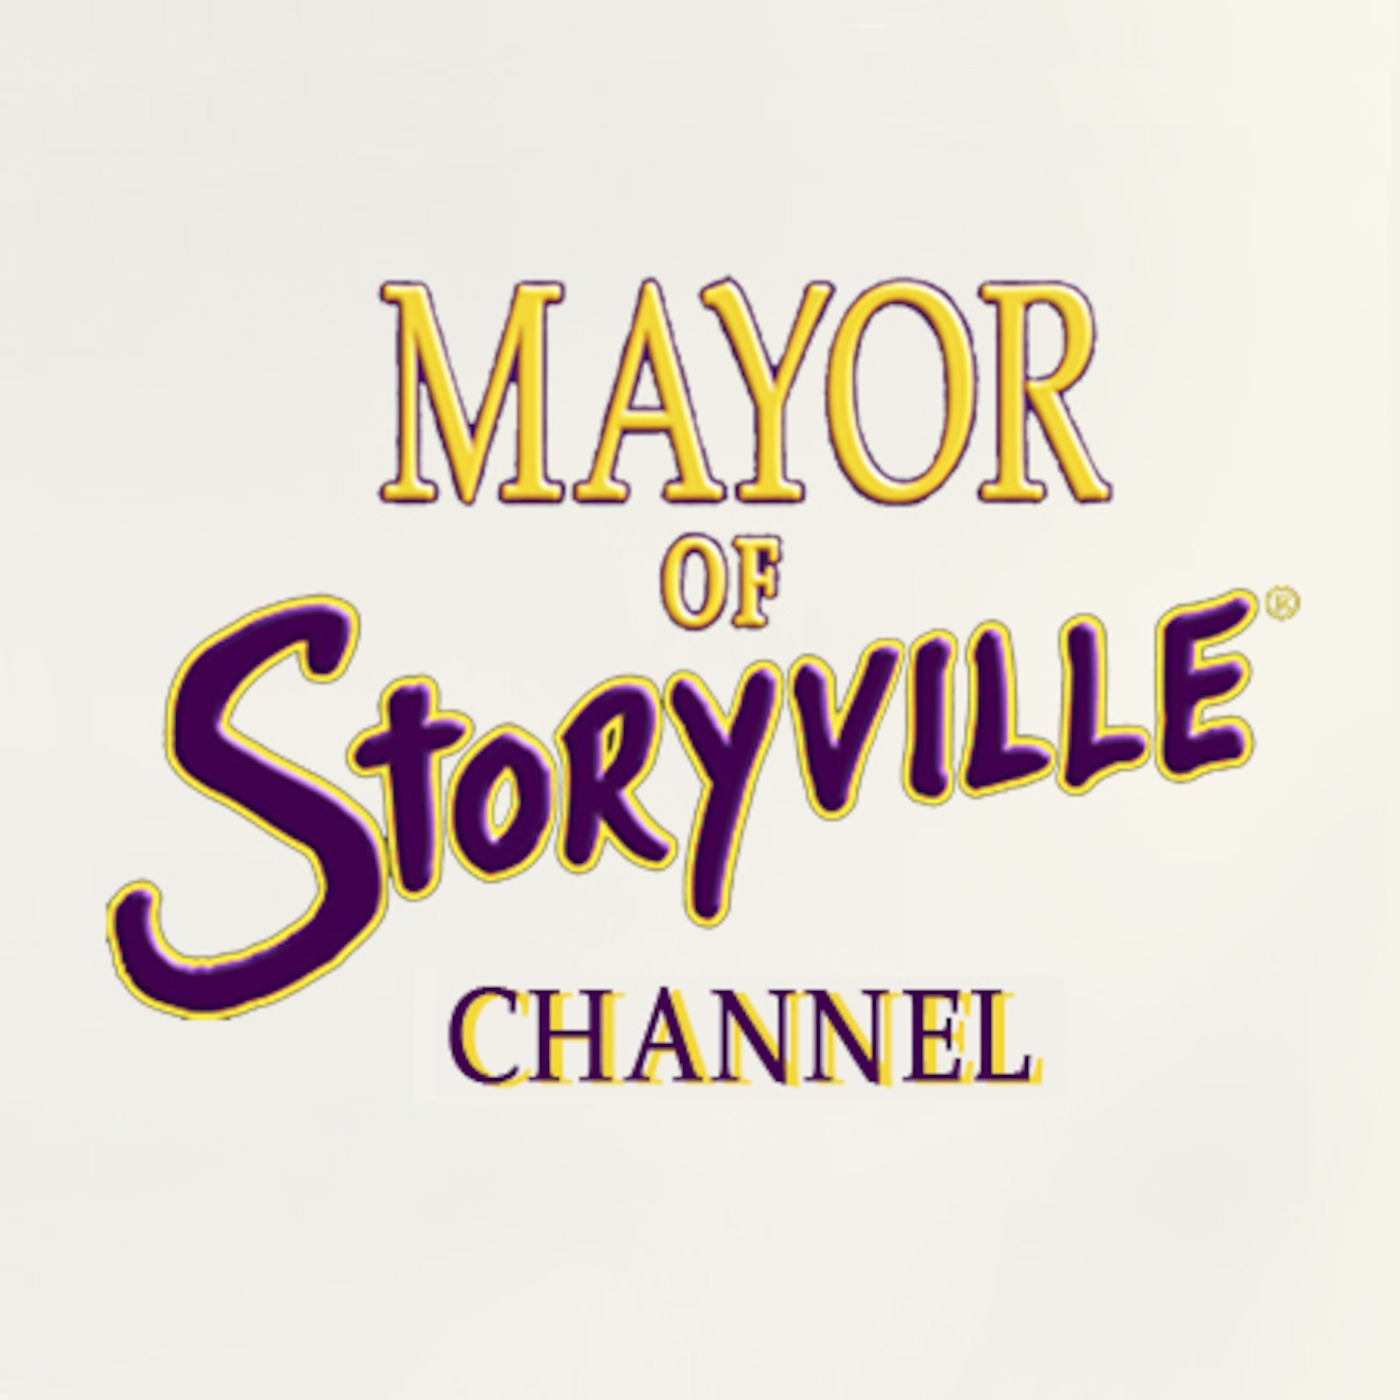 Mayor of Storyville® Channel